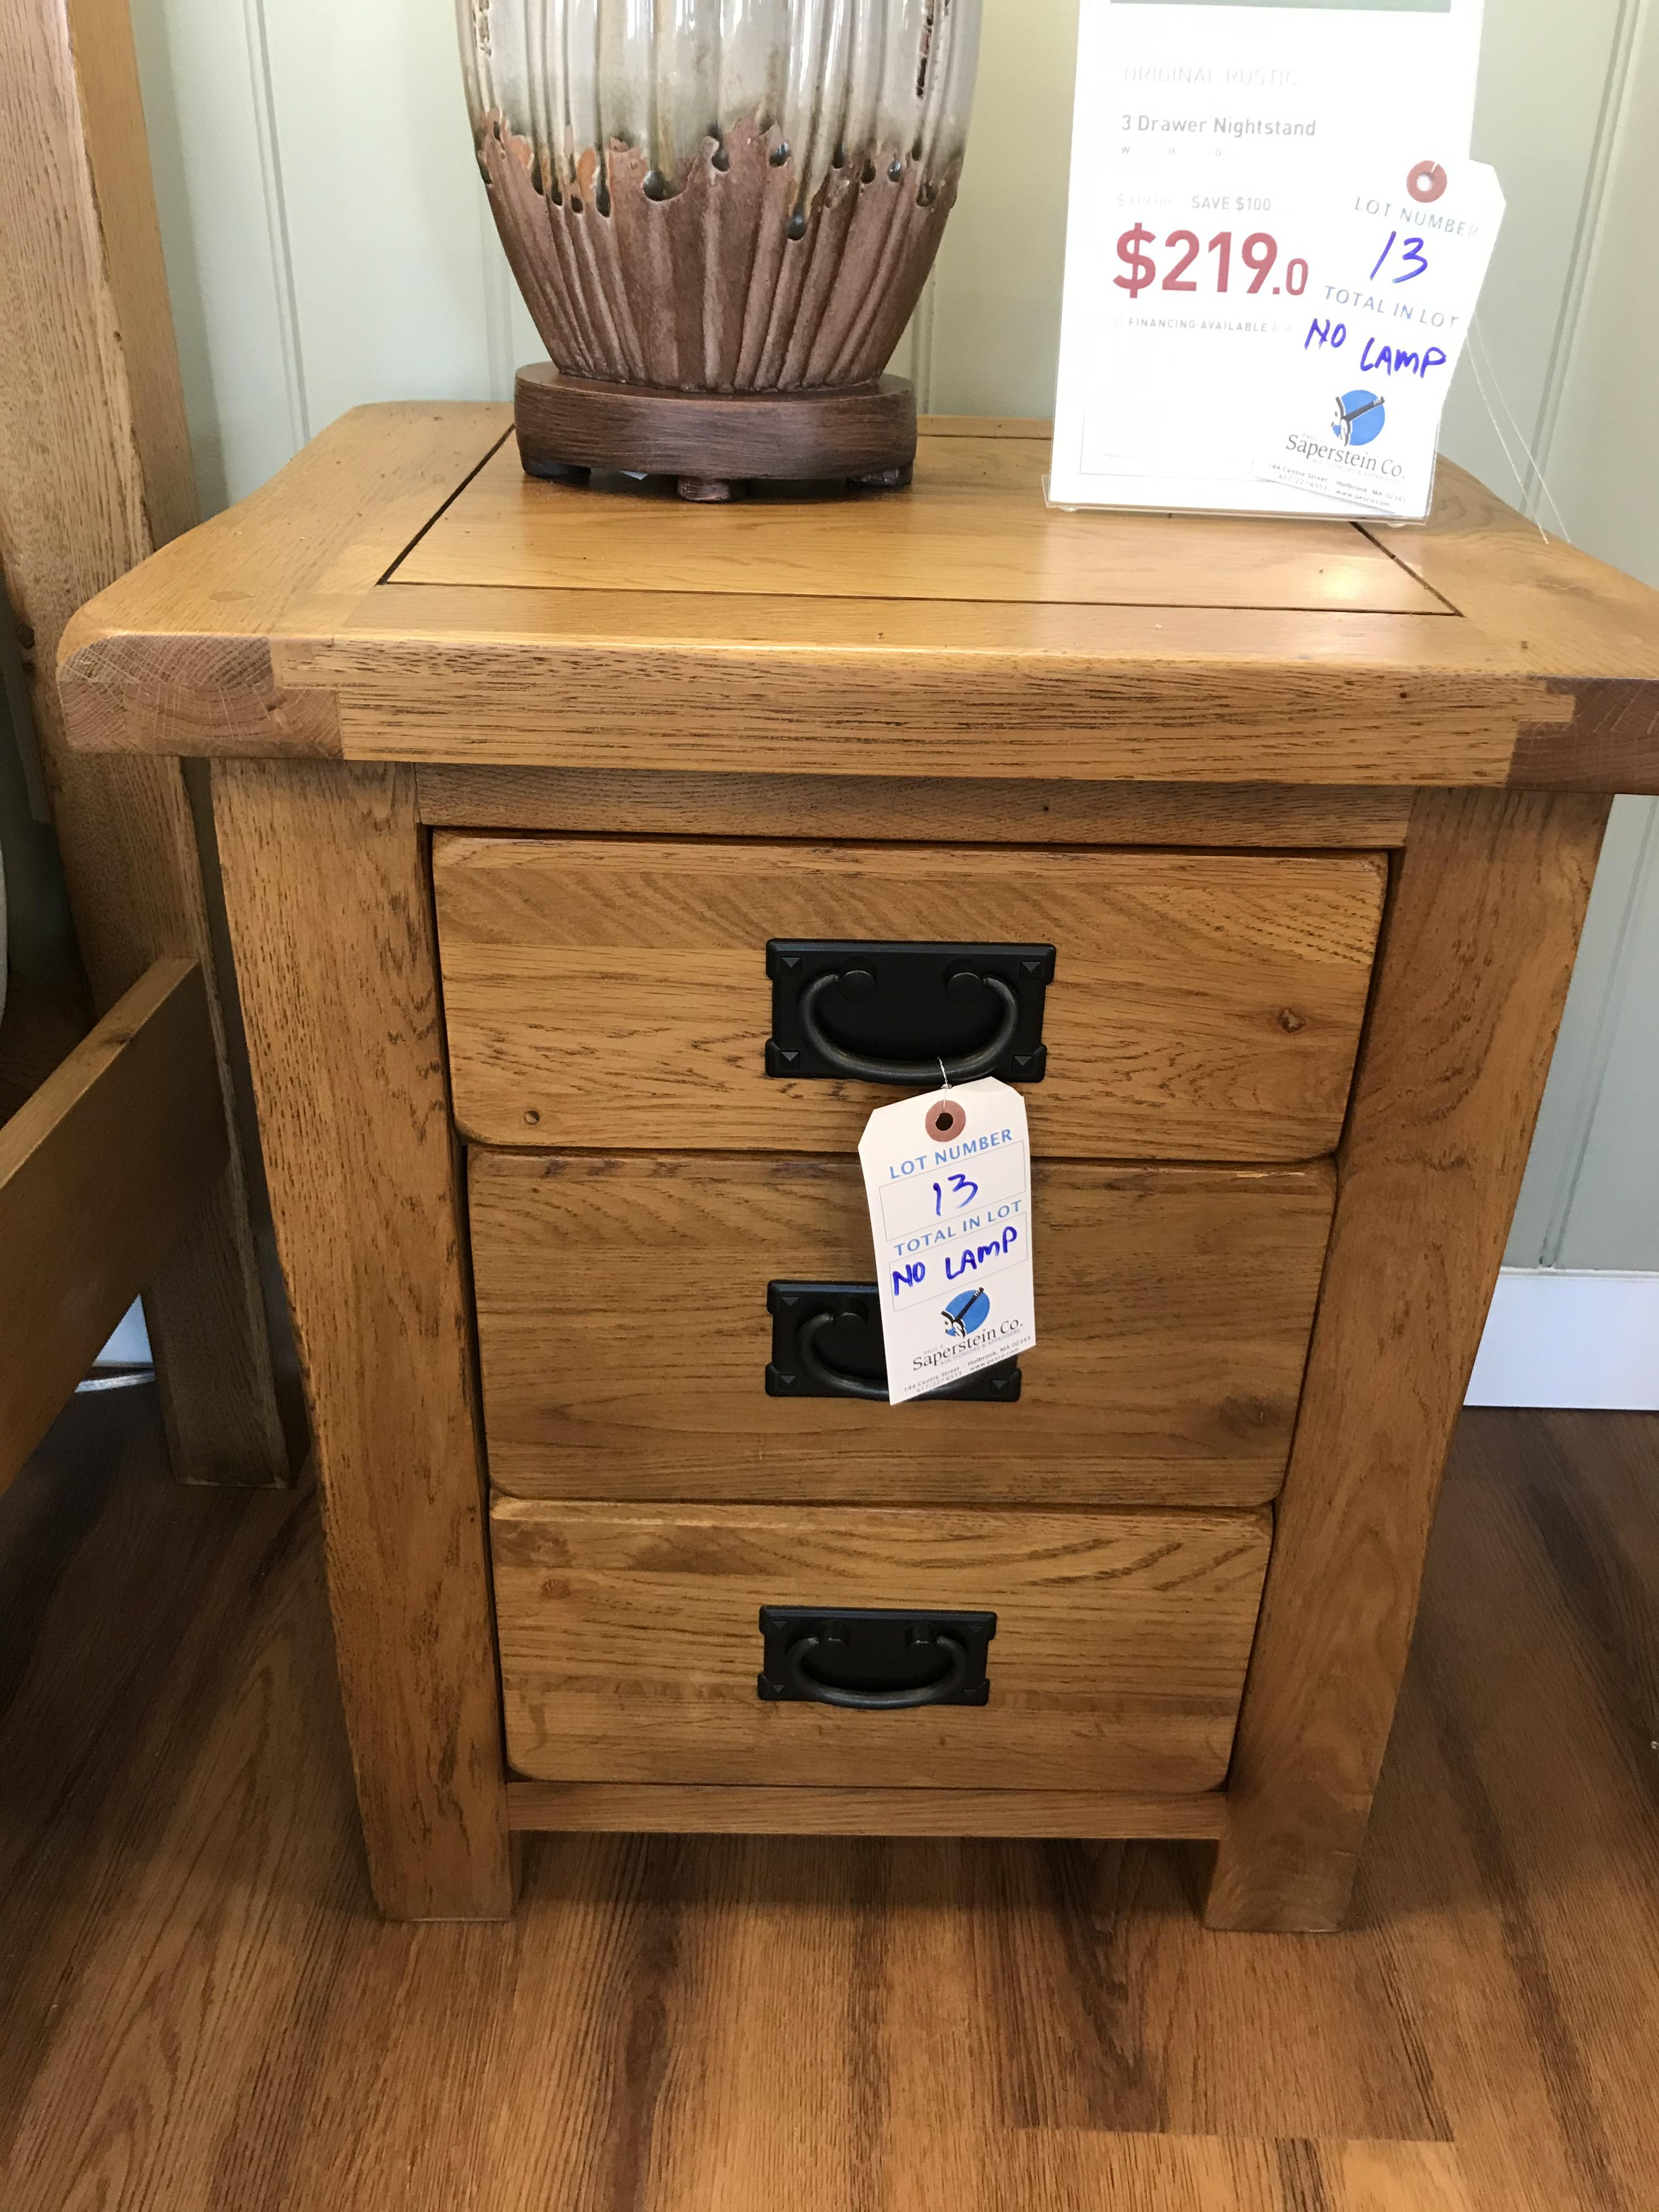 3 Drawer Nightstand (Original Rustic) See Picture For Dimensions and Product Info